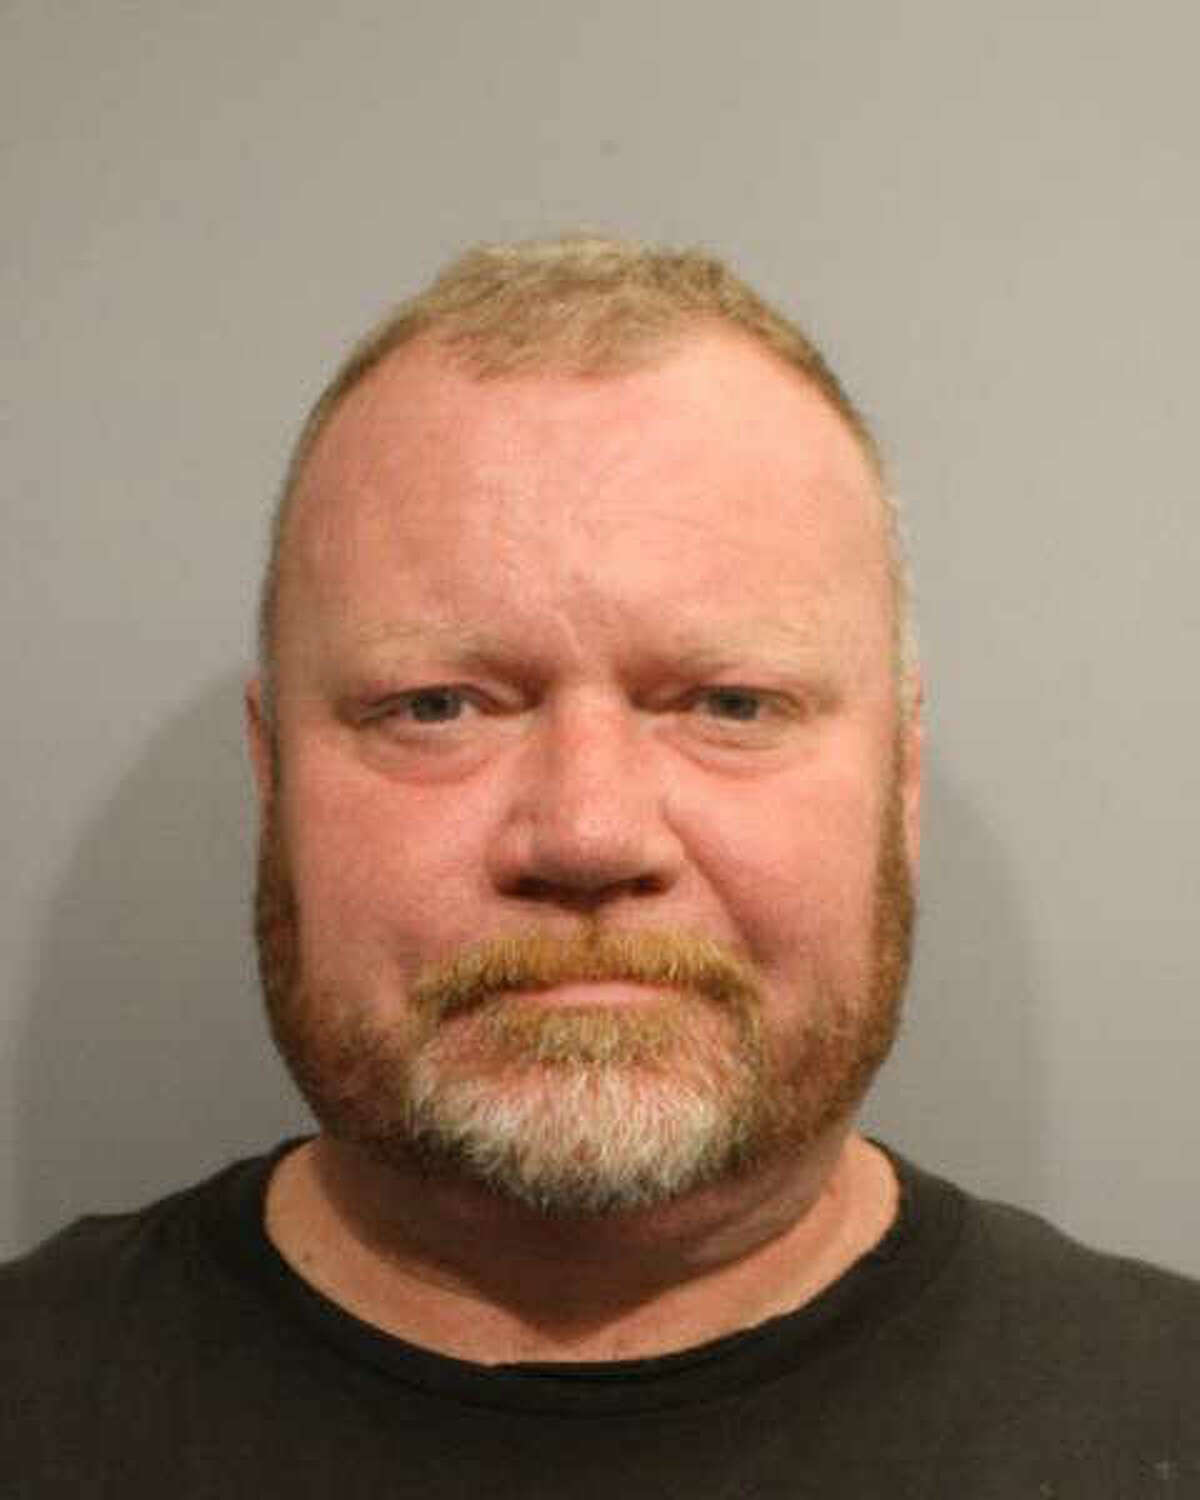 This booking photo provided by the Wilton Police Department shows Eivind Heggland. Heggland is accused of punching his son in the arm and pulling his hair last month.